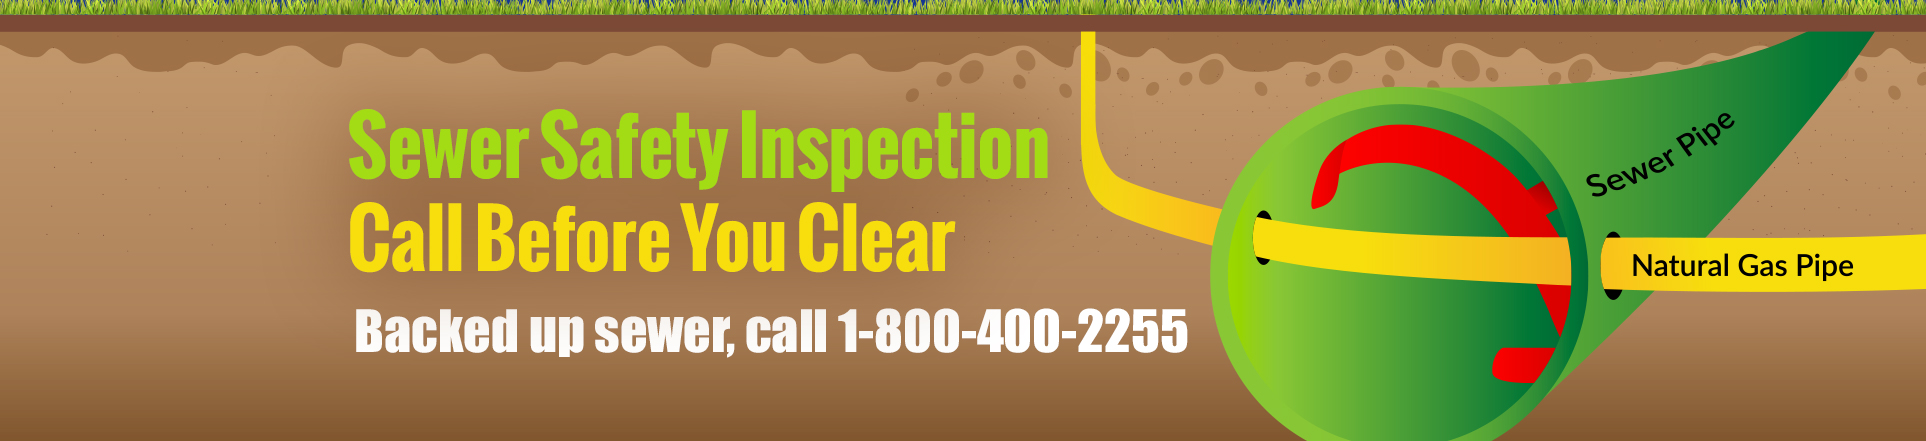 header bar-Call before you clear-1920x440